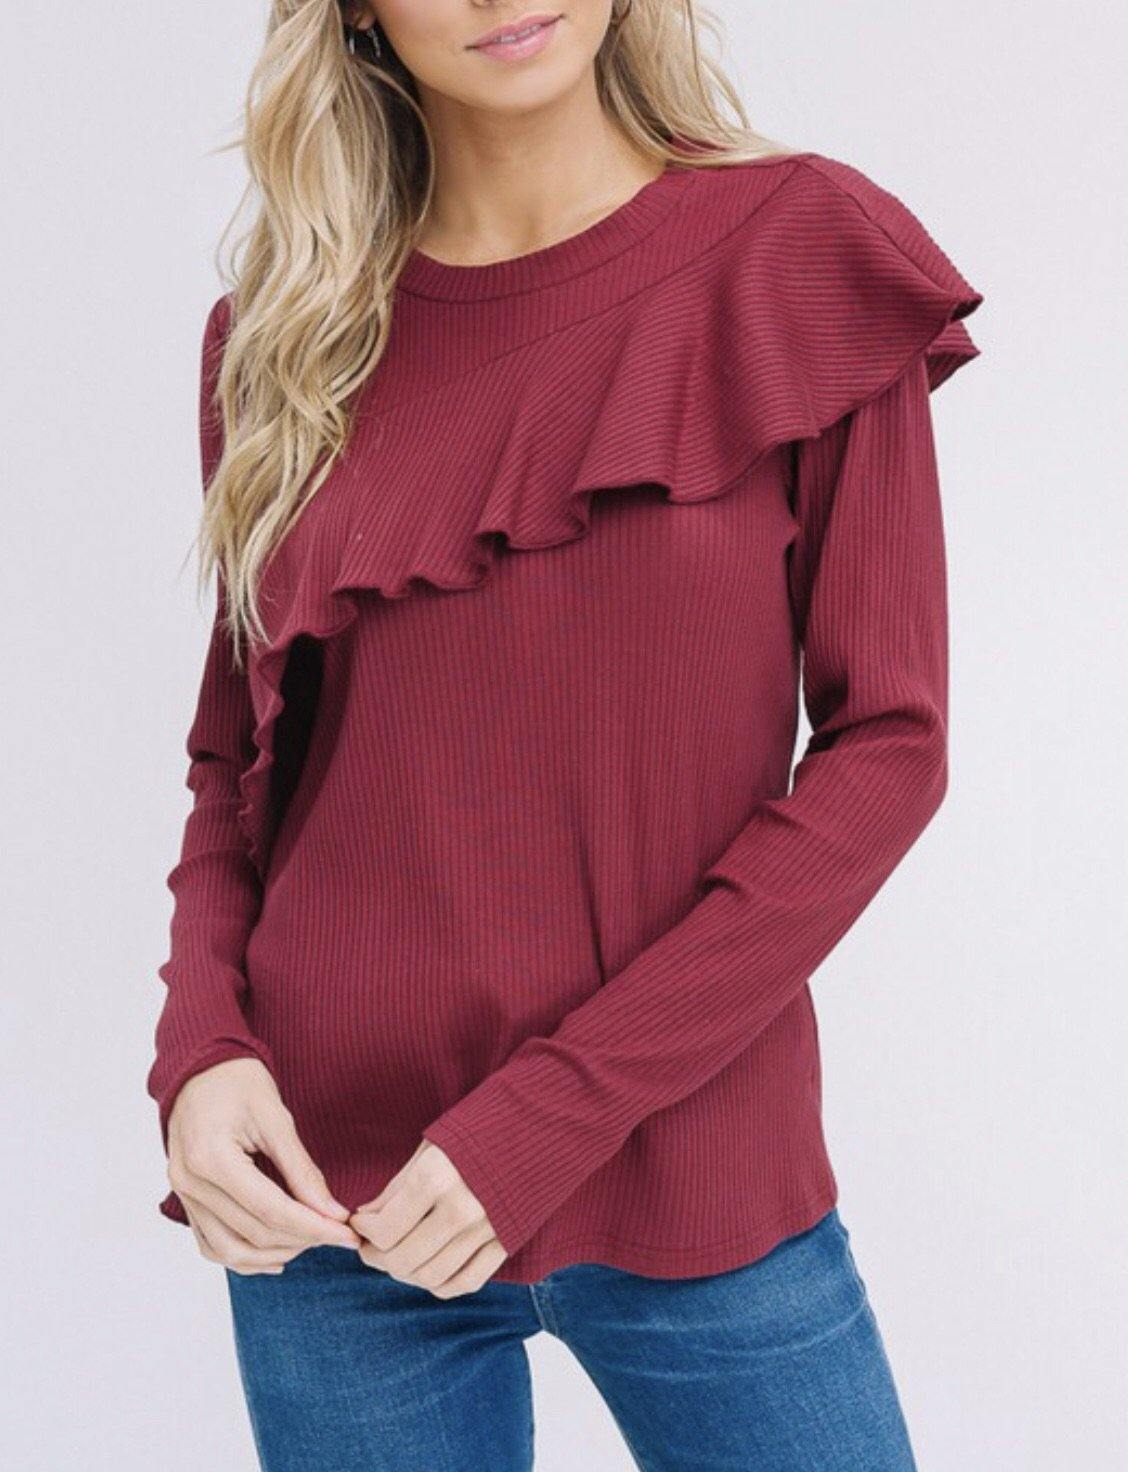 RYANN RIBBED TOP - elbie boutique, LLC